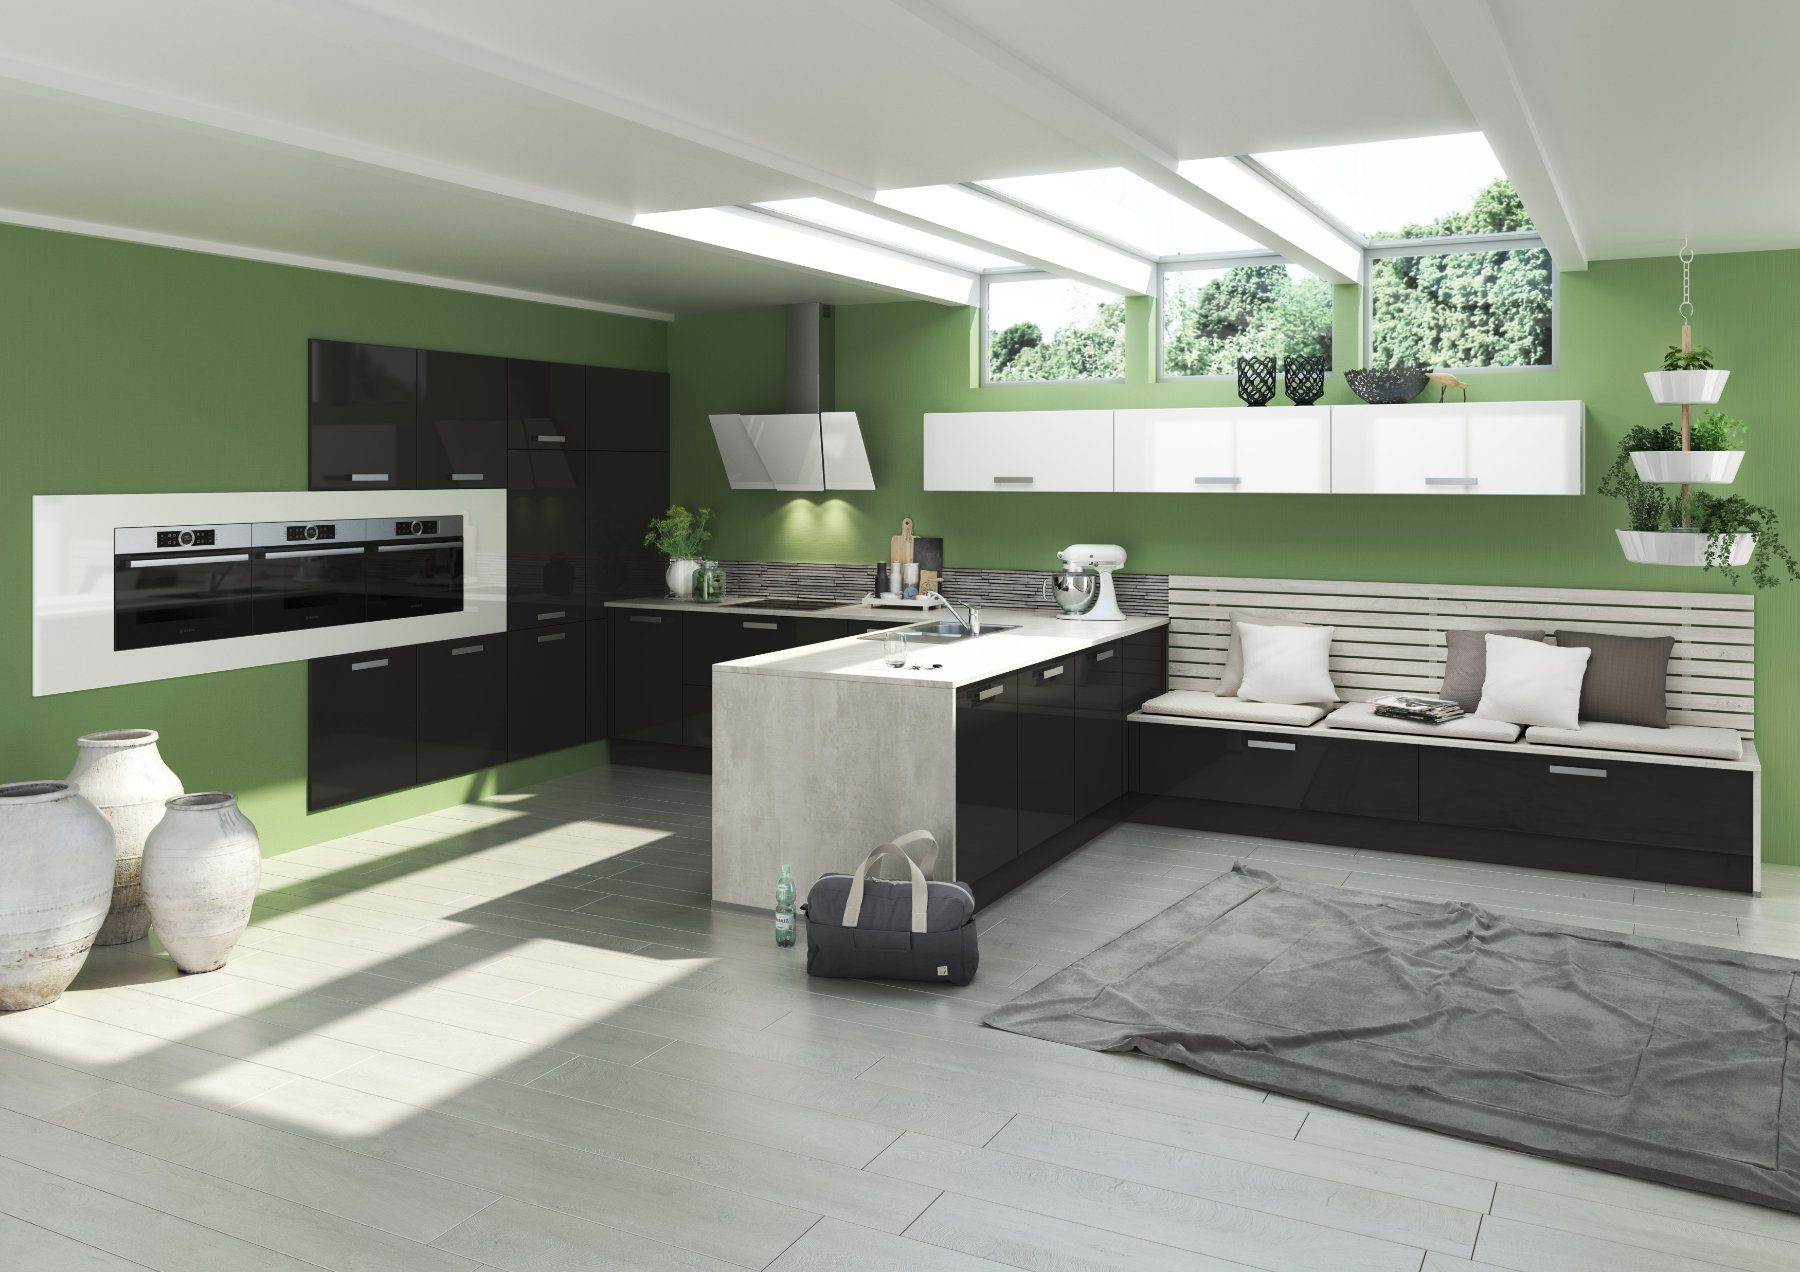 Bauformat Monochrome Gloss Kitchen With Lime Green Wall   MHK Kitchen Experts